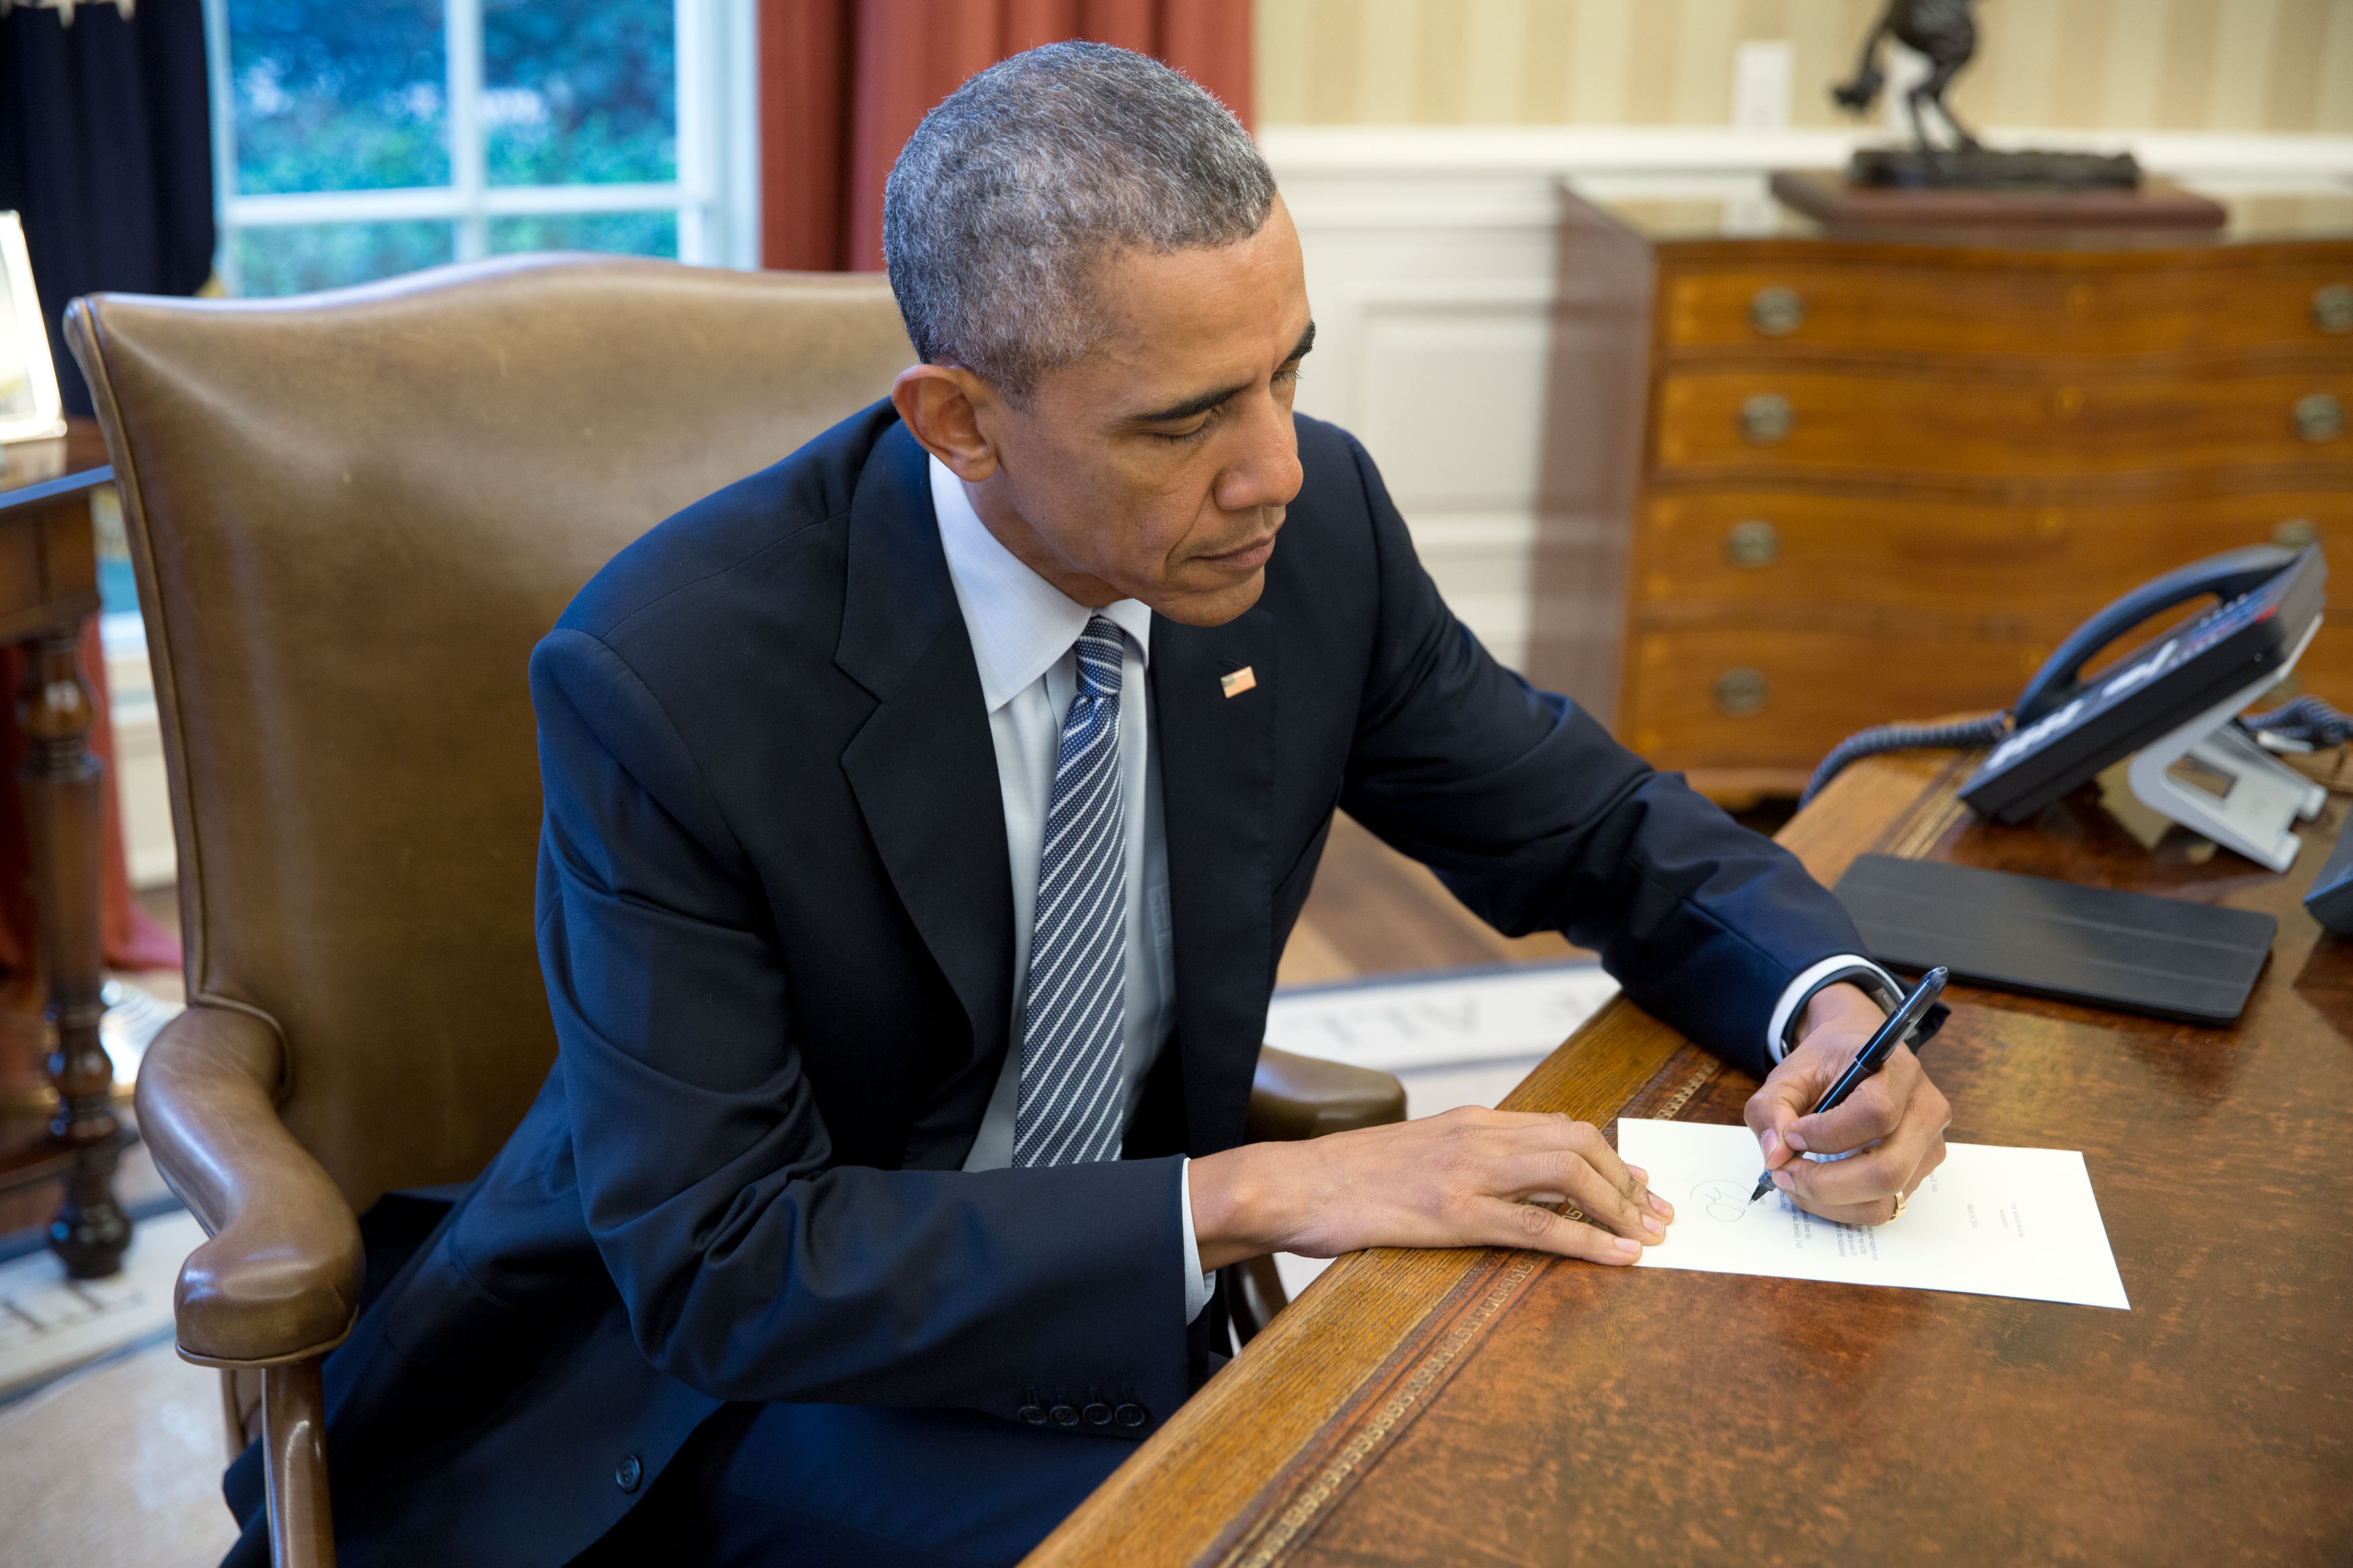 oval office july 2015. President Barack Obama Signs A Letter To Ileana Yarza, 76-year-old Oval Office July 2015 S